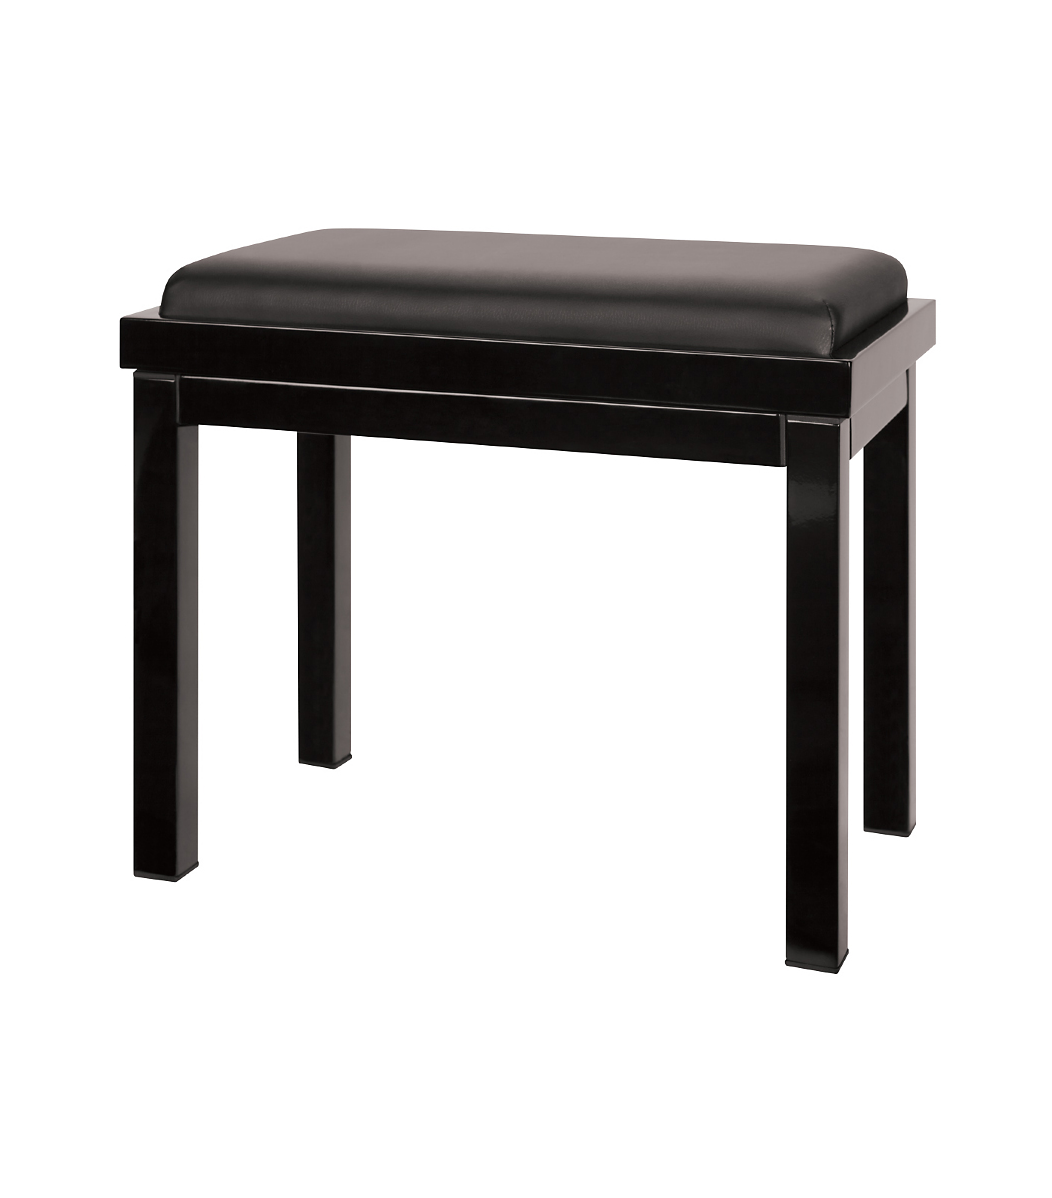 Proline Faux Leather Steel Piano Bench